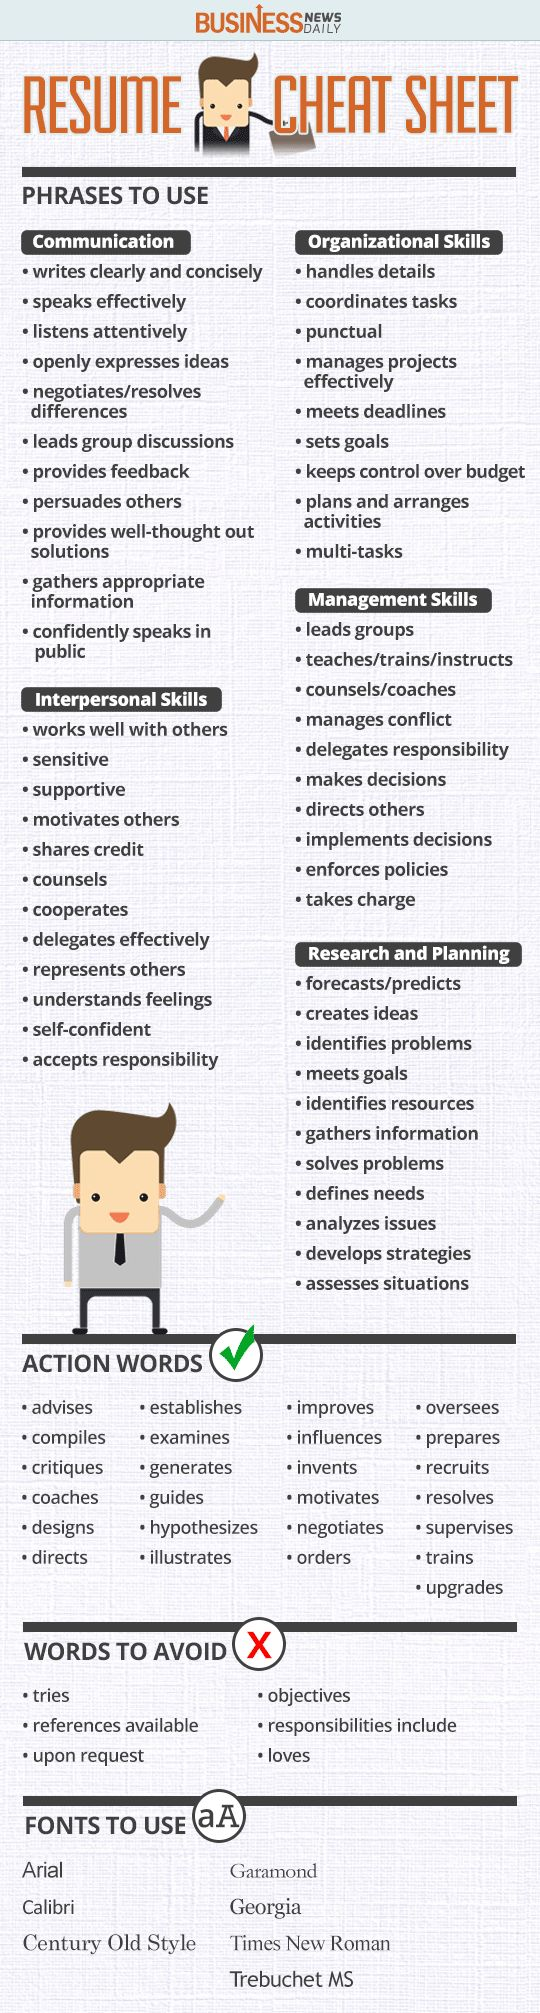 Opposenewapstandardsus  Mesmerizing  Ideas About Resume On Pinterest  Cv Format Resume Cv And  With Inspiring Resume Cheat Sheet Infographic Andrews Almost Done With A Complete Unit On Employment Which With Astonishing Qa Sample Resume Also Skill Section Of Resume In Addition Free Resume Templet And Bank Teller Resume No Experience As Well As Resume Cover Sheet Examples Additionally Resume How To Write From Pinterestcom With Opposenewapstandardsus  Inspiring  Ideas About Resume On Pinterest  Cv Format Resume Cv And  With Astonishing Resume Cheat Sheet Infographic Andrews Almost Done With A Complete Unit On Employment Which And Mesmerizing Qa Sample Resume Also Skill Section Of Resume In Addition Free Resume Templet From Pinterestcom